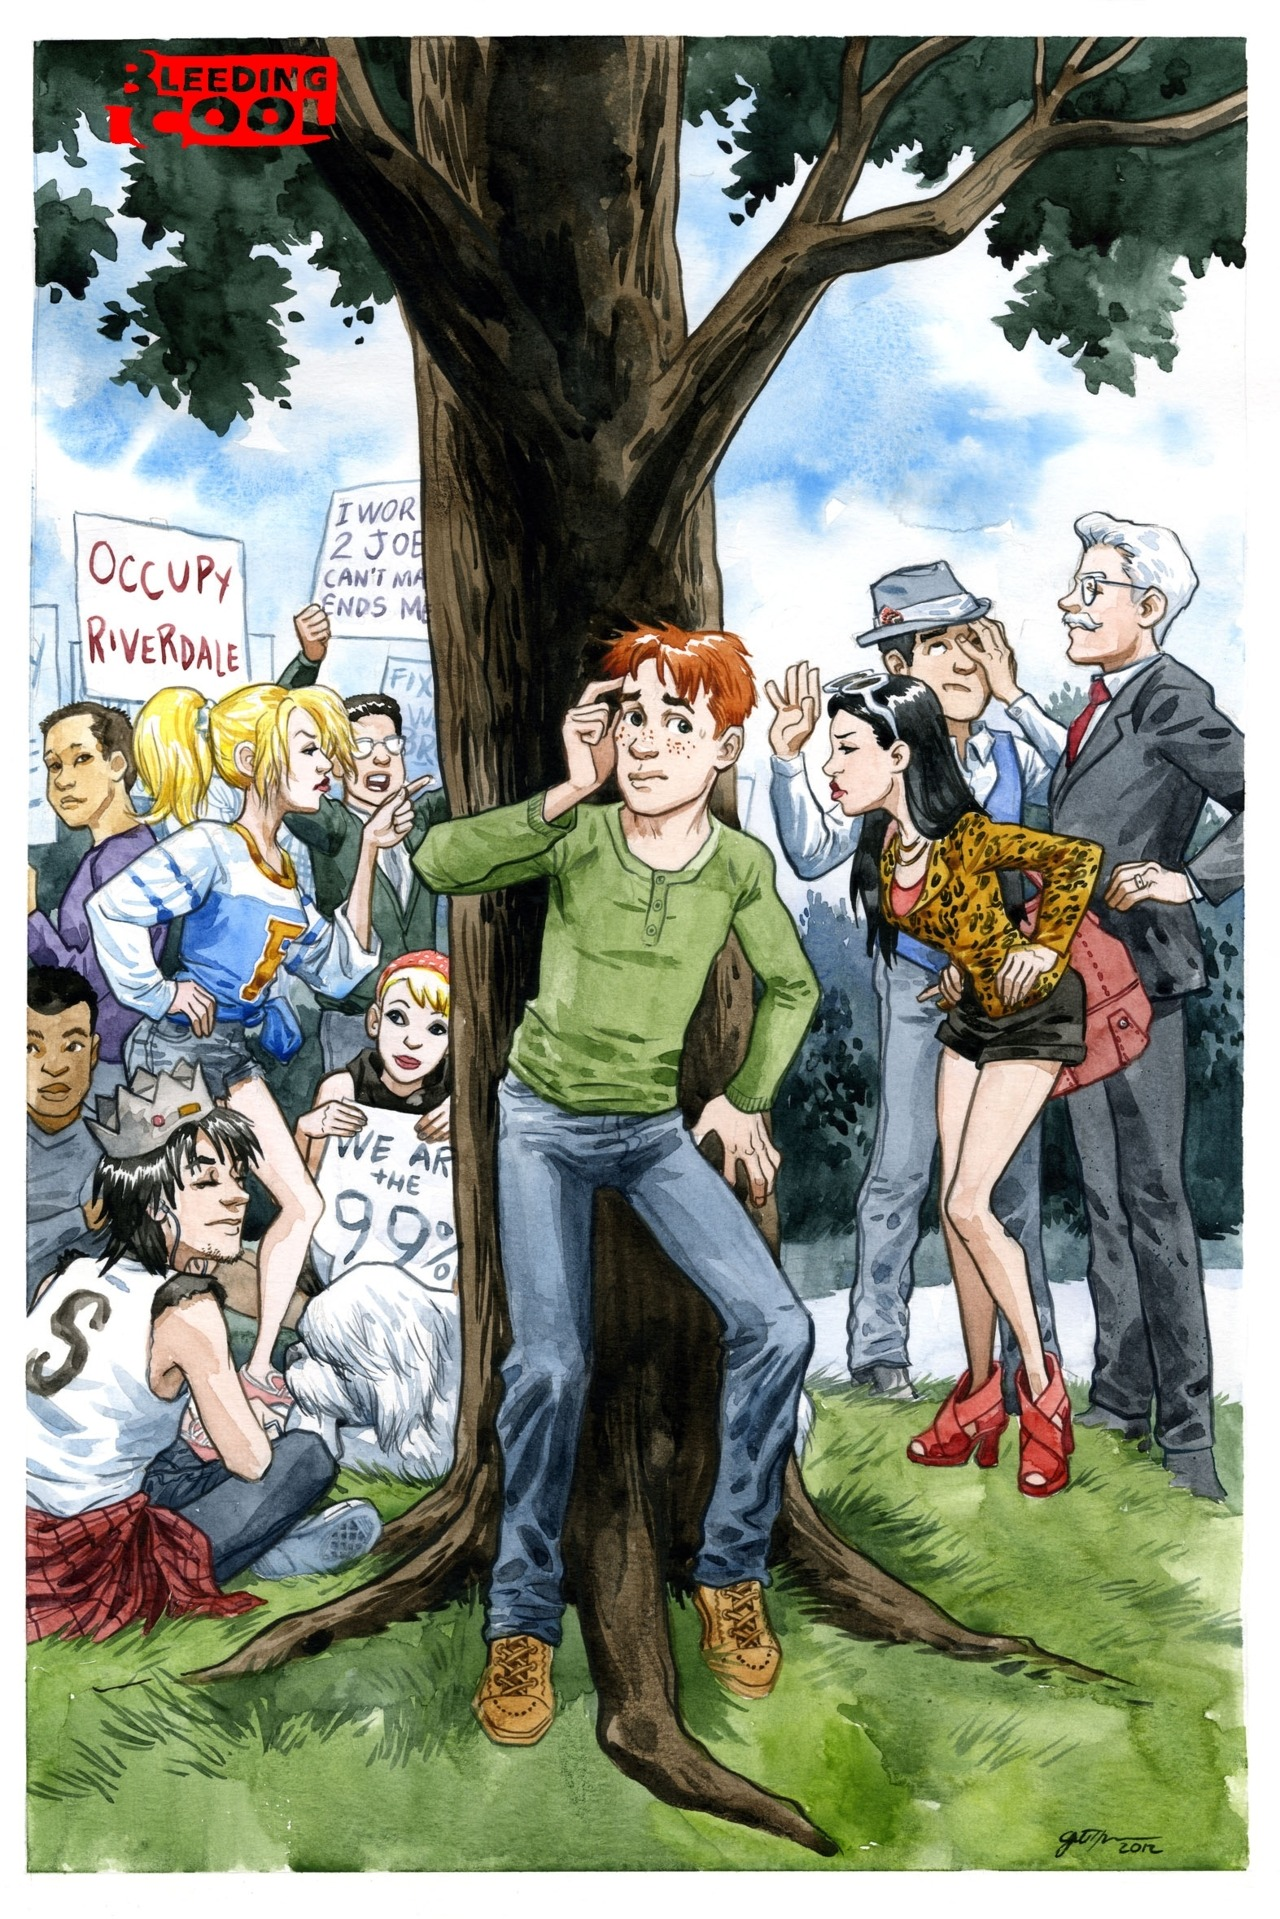 Jill Thompson's gorgeous art for an Occupy Riverdale issue of Archie.